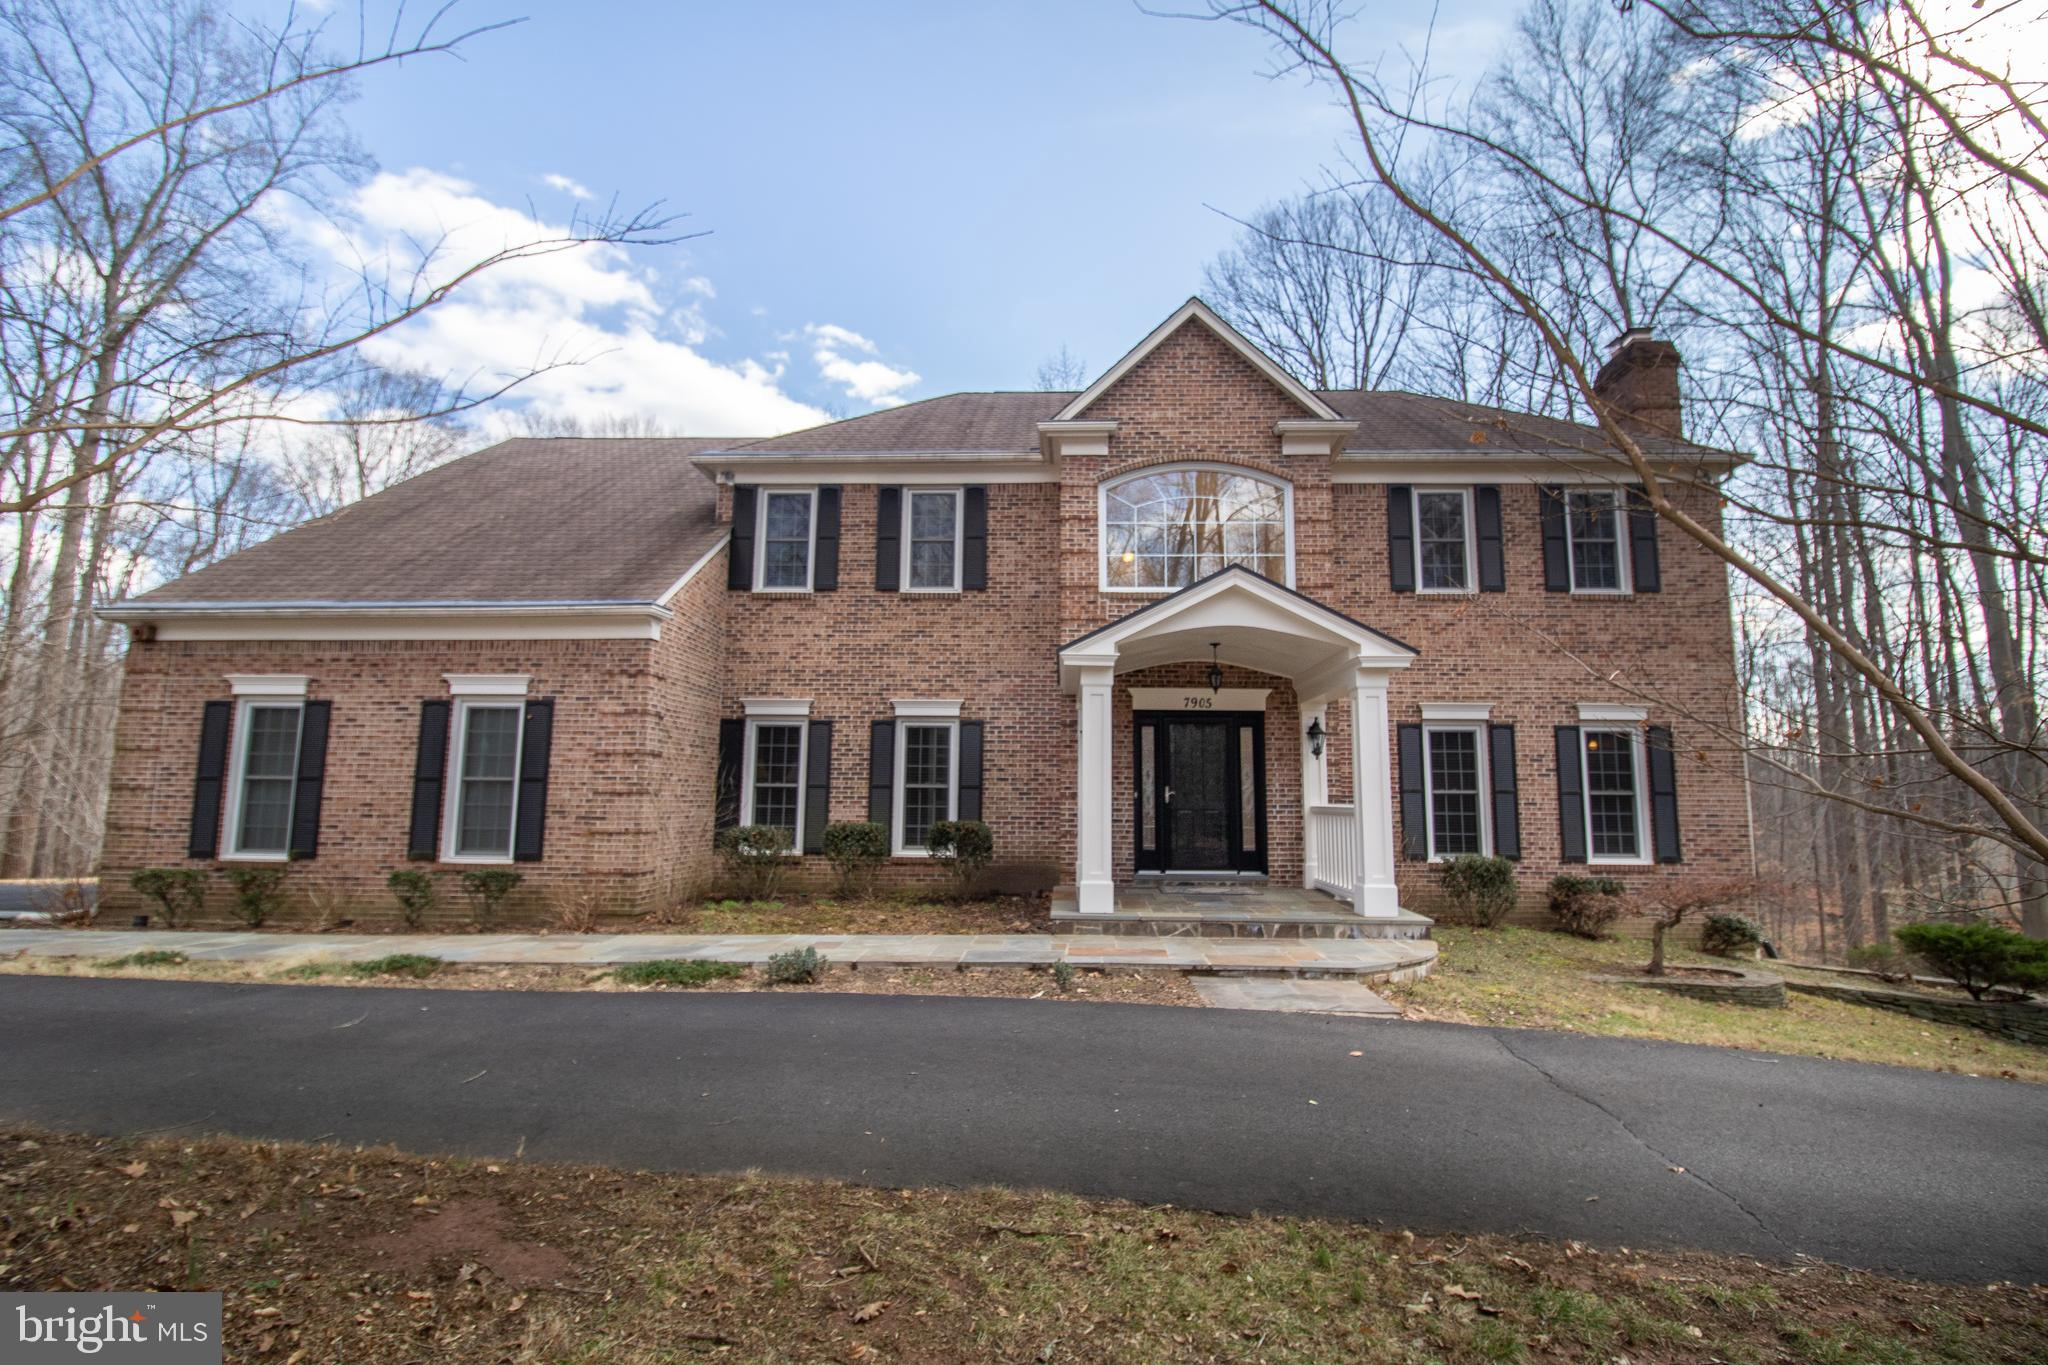 7905 CLIFTON HUNT COURT, CLIFTON, VA 20124